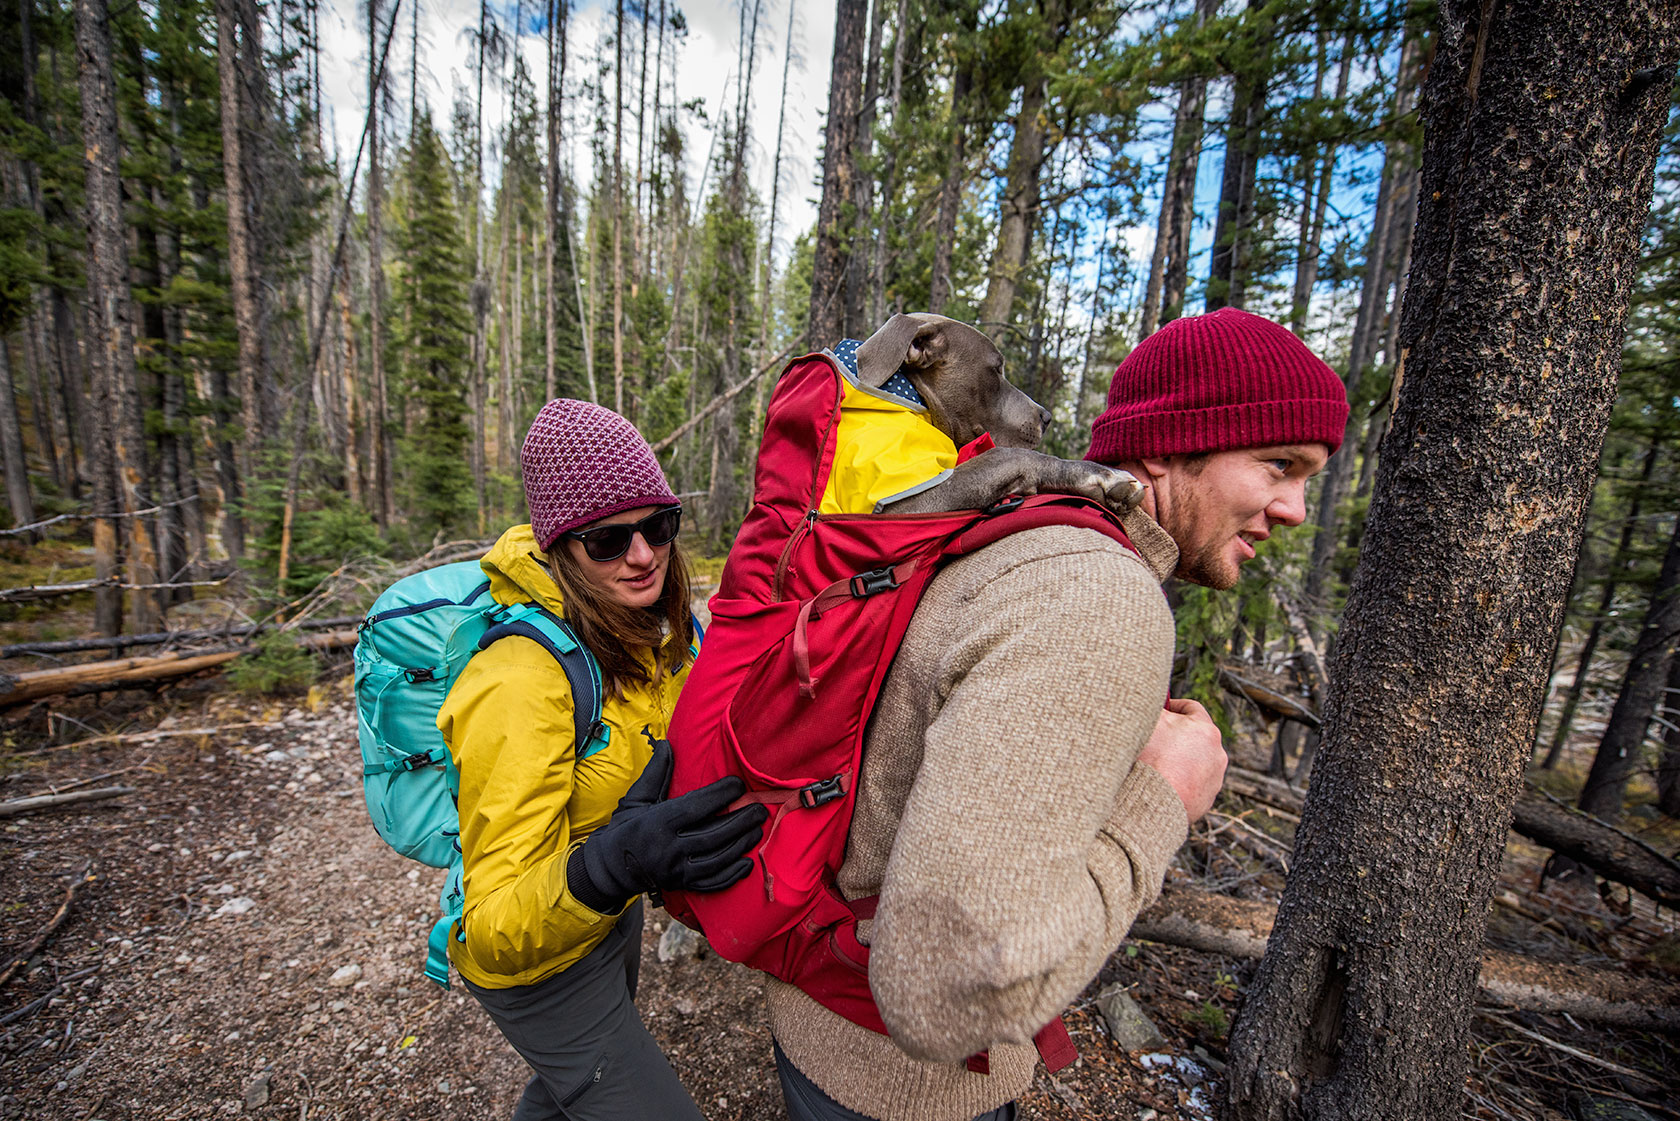 austin-trigg-patagonia-sawtooth-hiking-backpack-dog-advenure-wilderness-forest-idaho-outside-lifestyle-day-fall-weather-mountains-trees.jpg